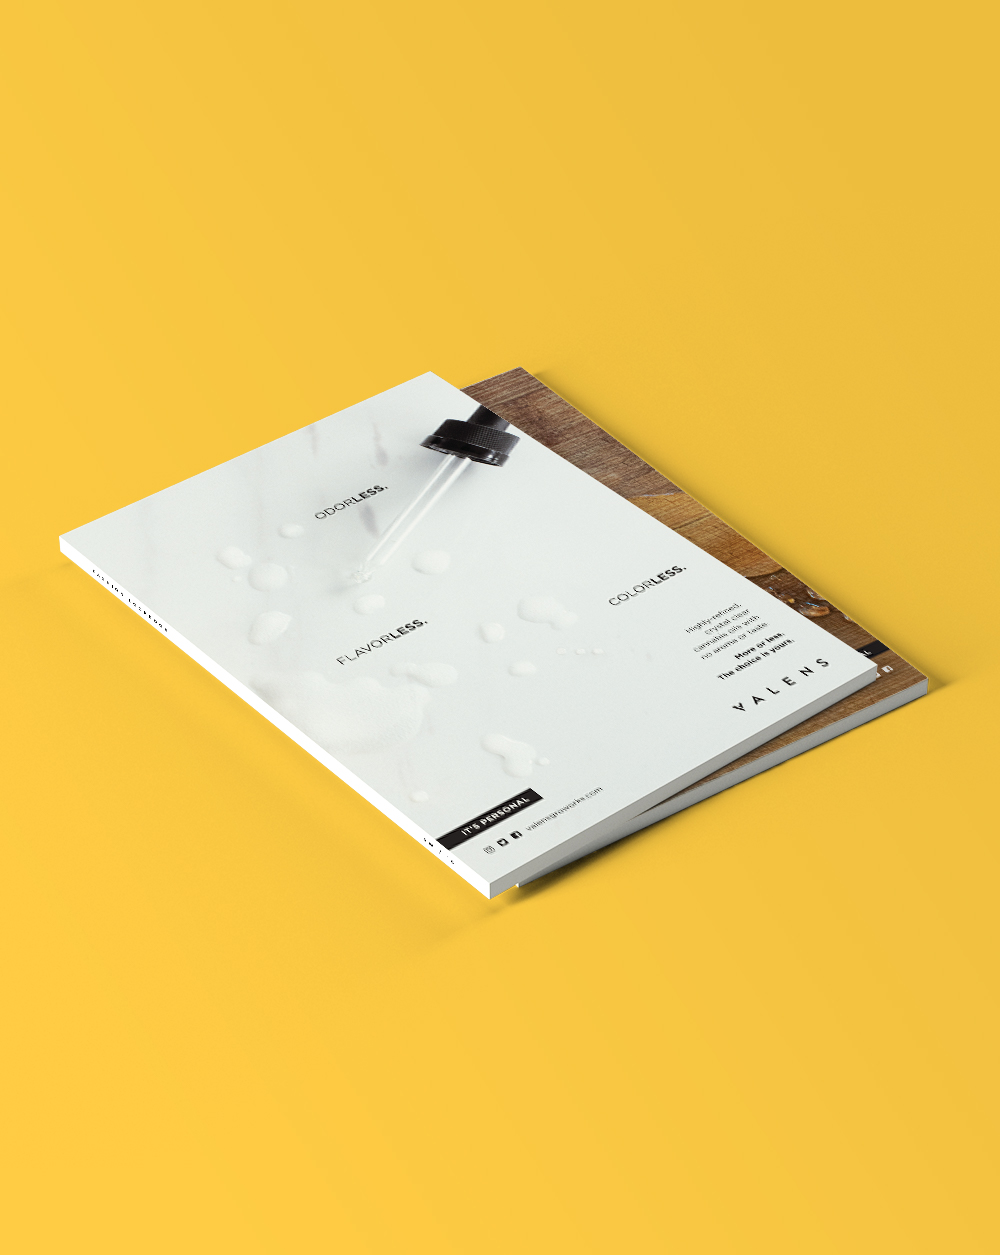 Two editorial design magazine mockups for Valens on a yellow background